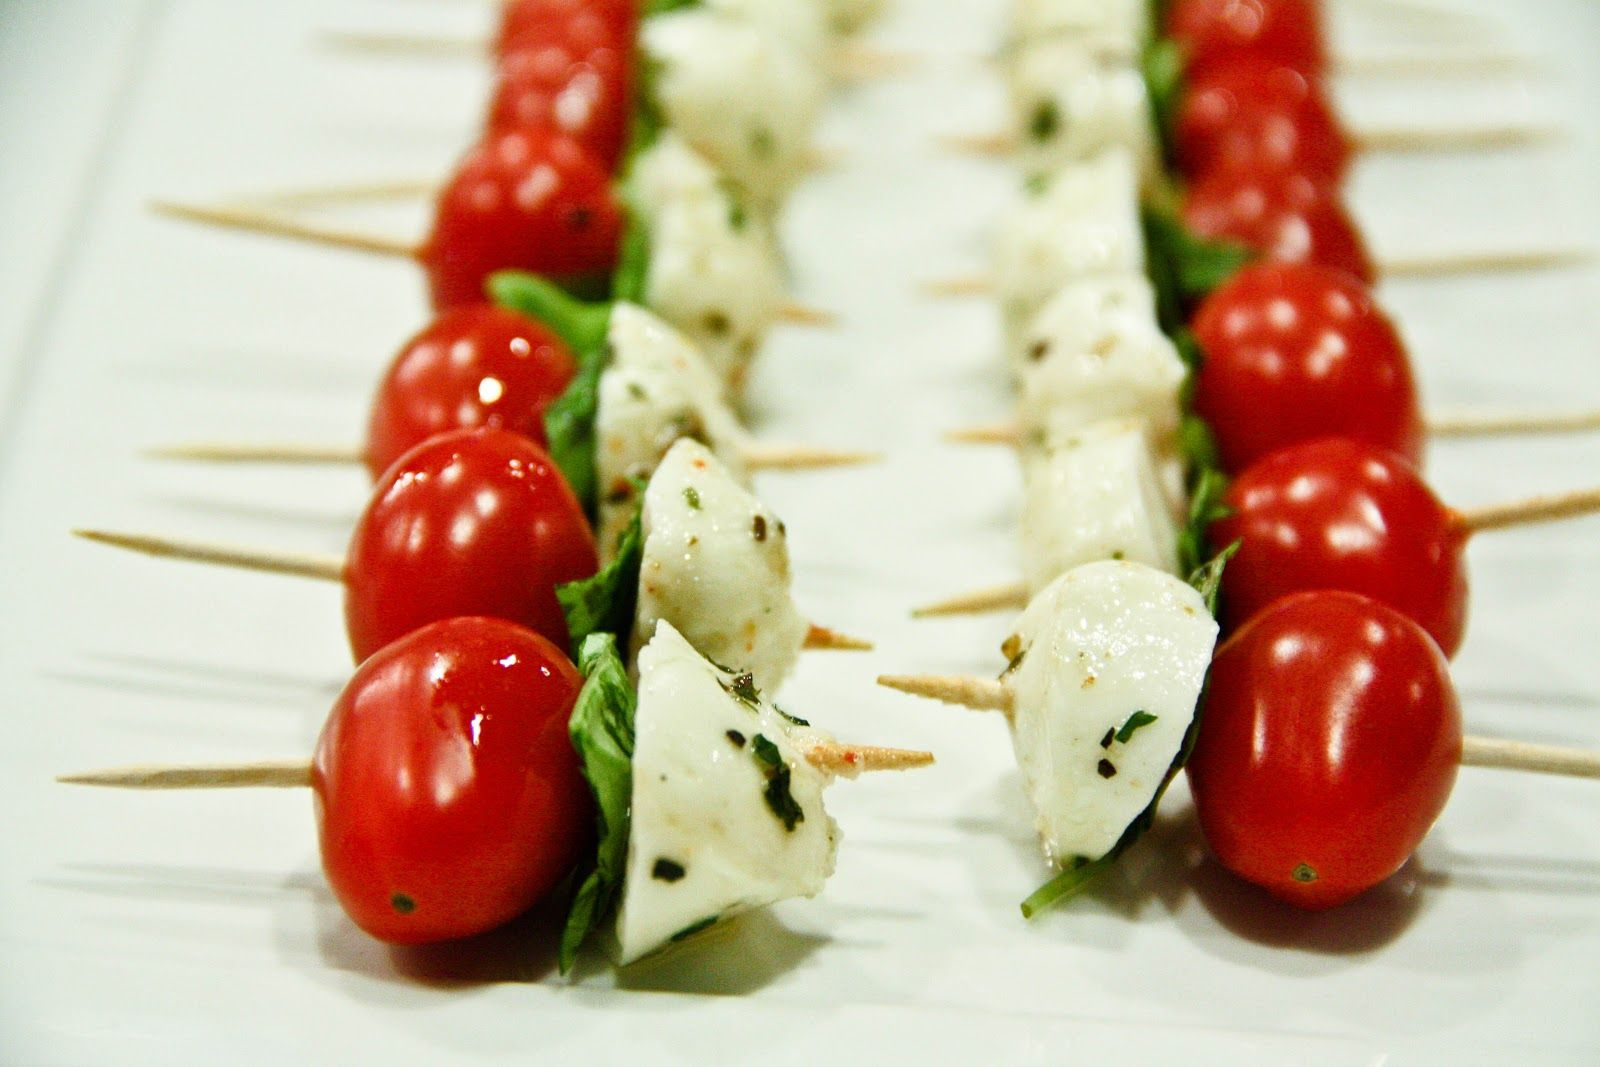 Caprese Salad Sticks w/Balsamic Reduction Drizzle (gluten-free, contains dairy) - Vegetarian Gastronomy